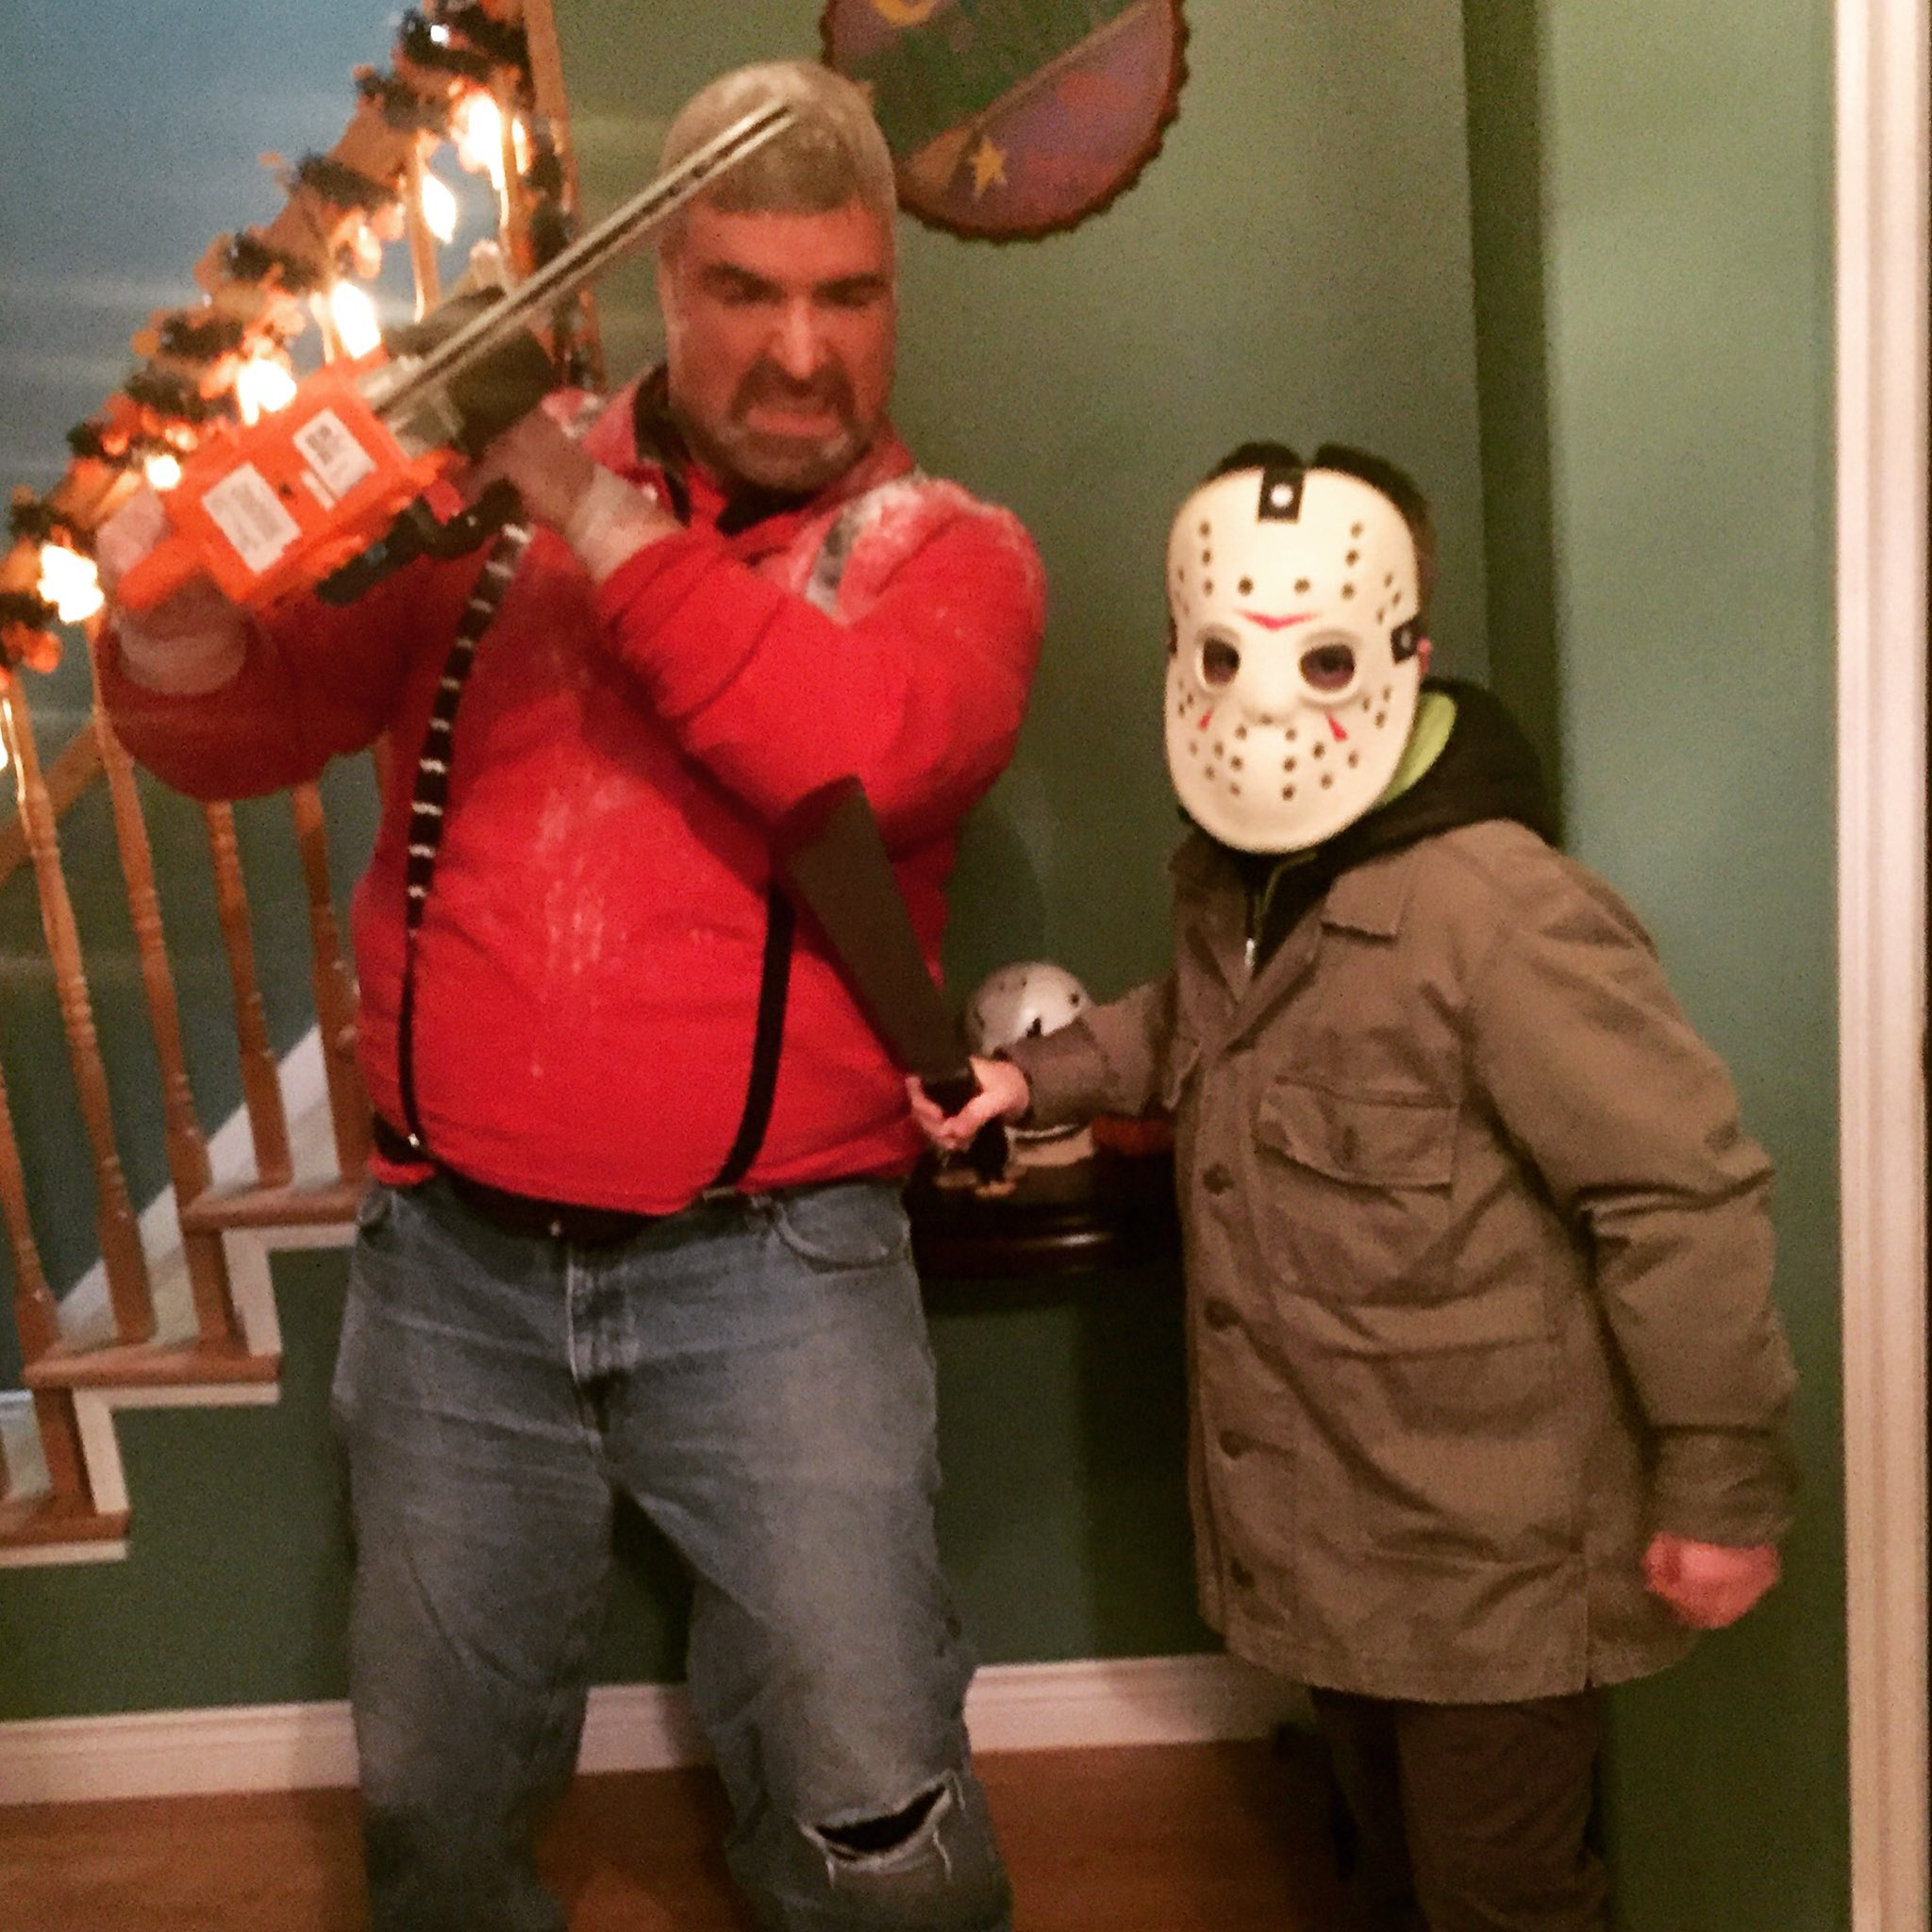 Happy 75th Birthday Terry Funk, you made for a great Halloween costume last year.